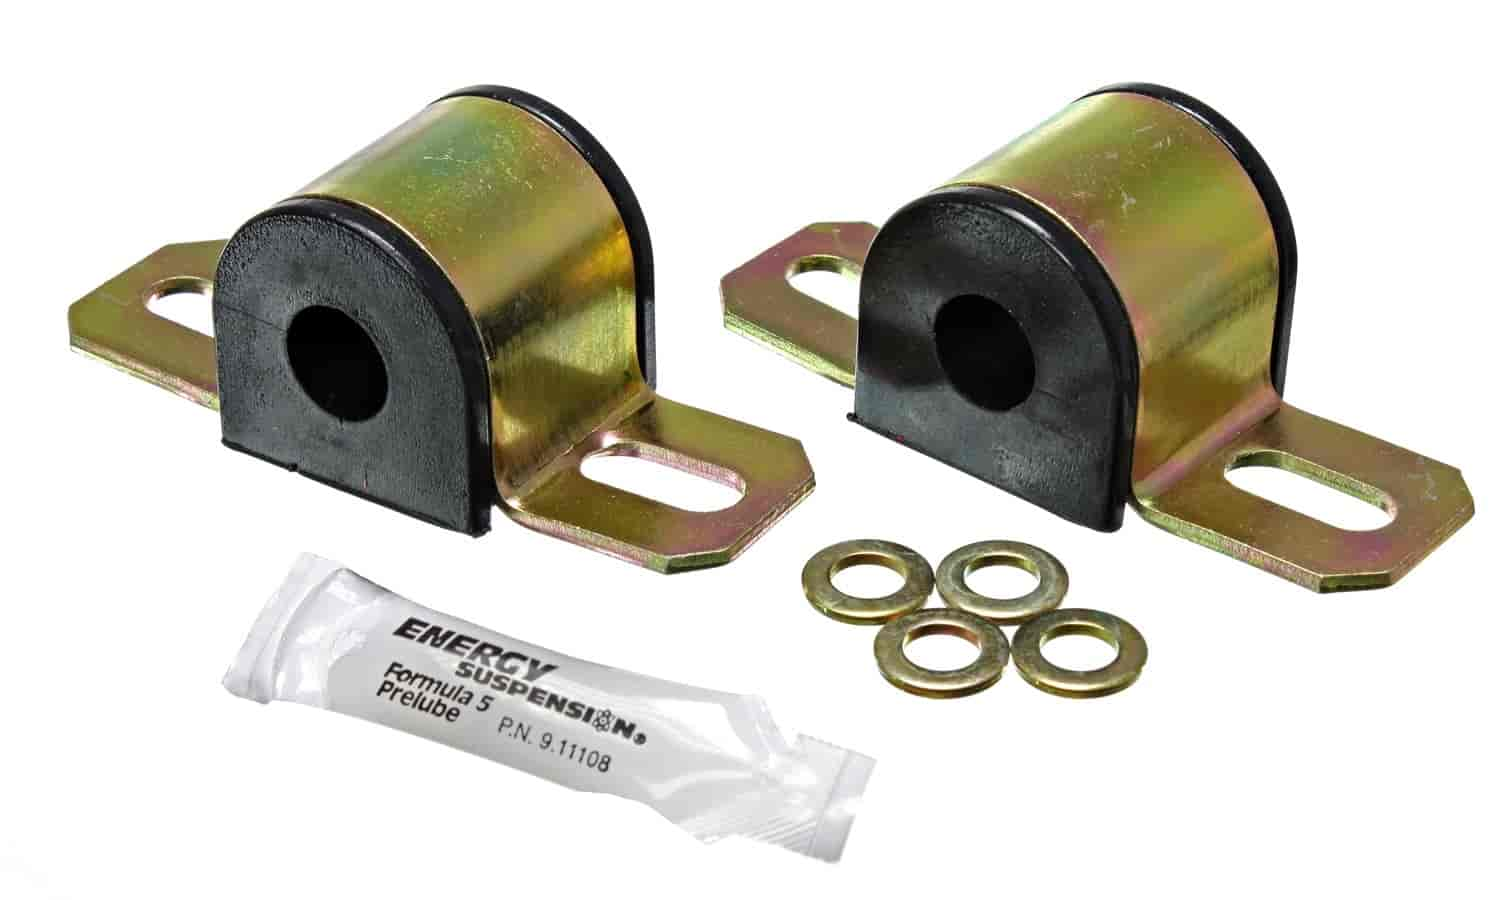 Energy Suspension 9-5106G